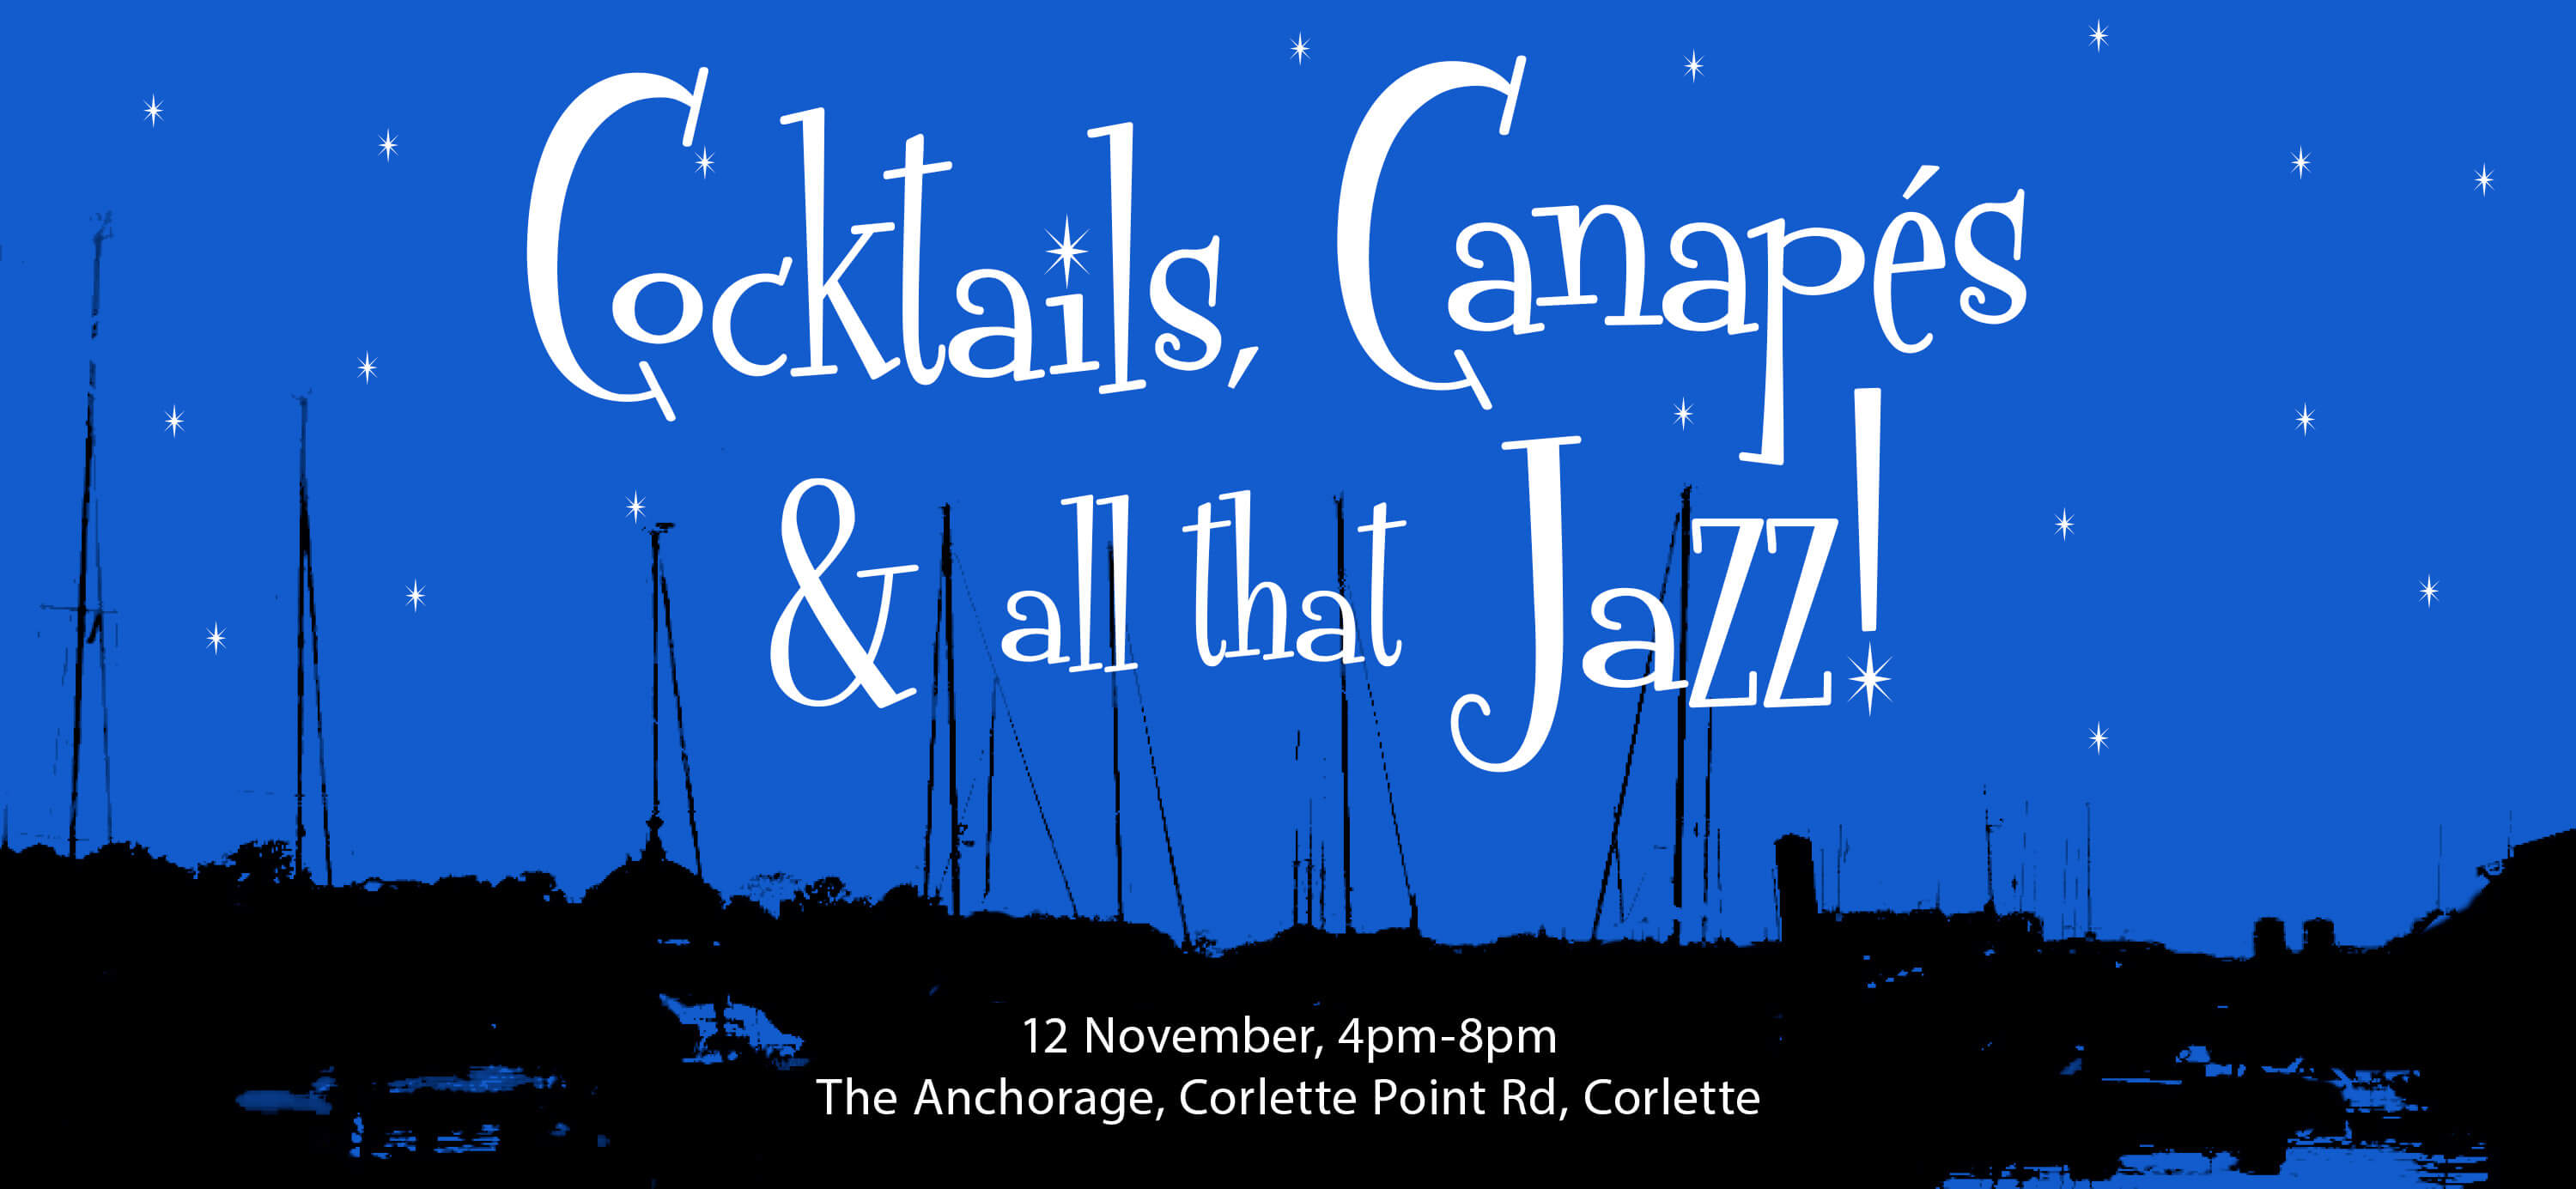 Cocktails, Canapes and all that Jazz!